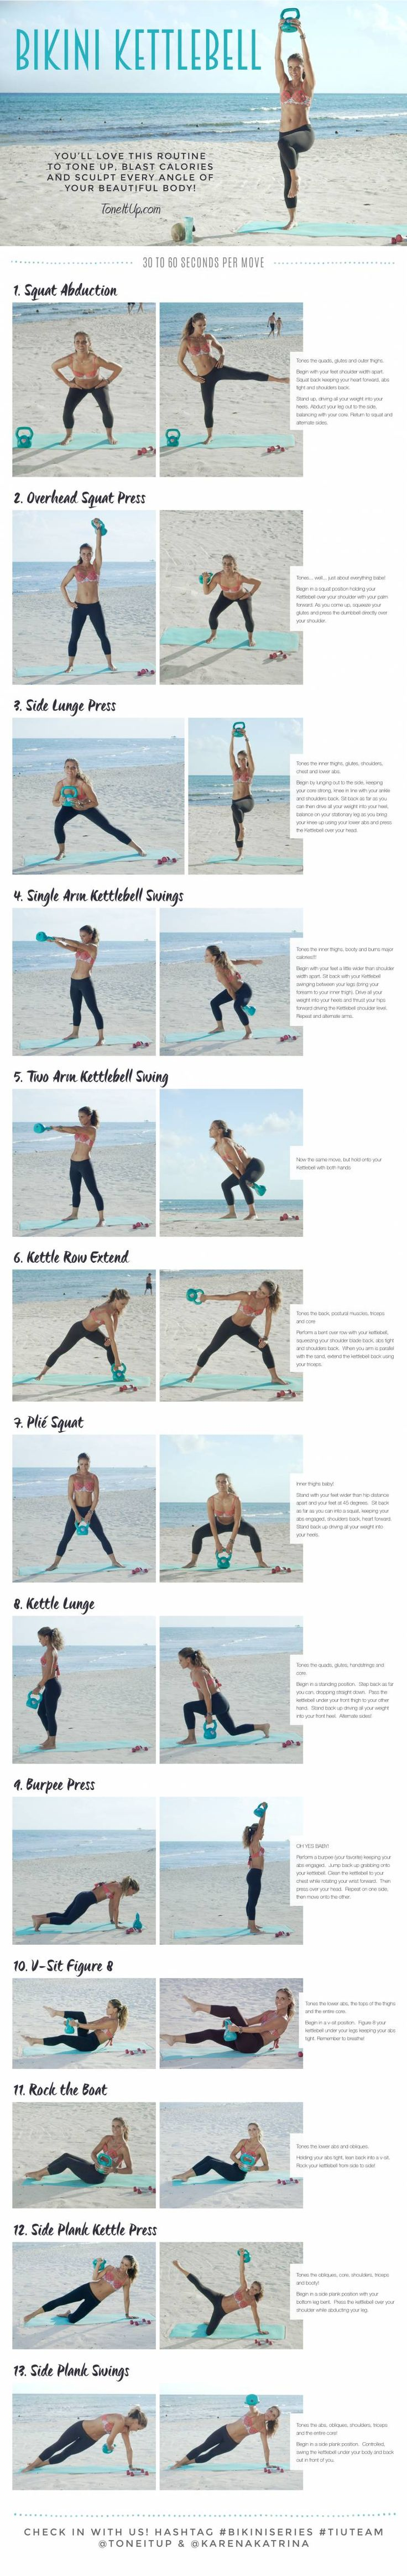 NEW Workout ~ BIKINI KETTLEBELL!                                                                                                                                                     More